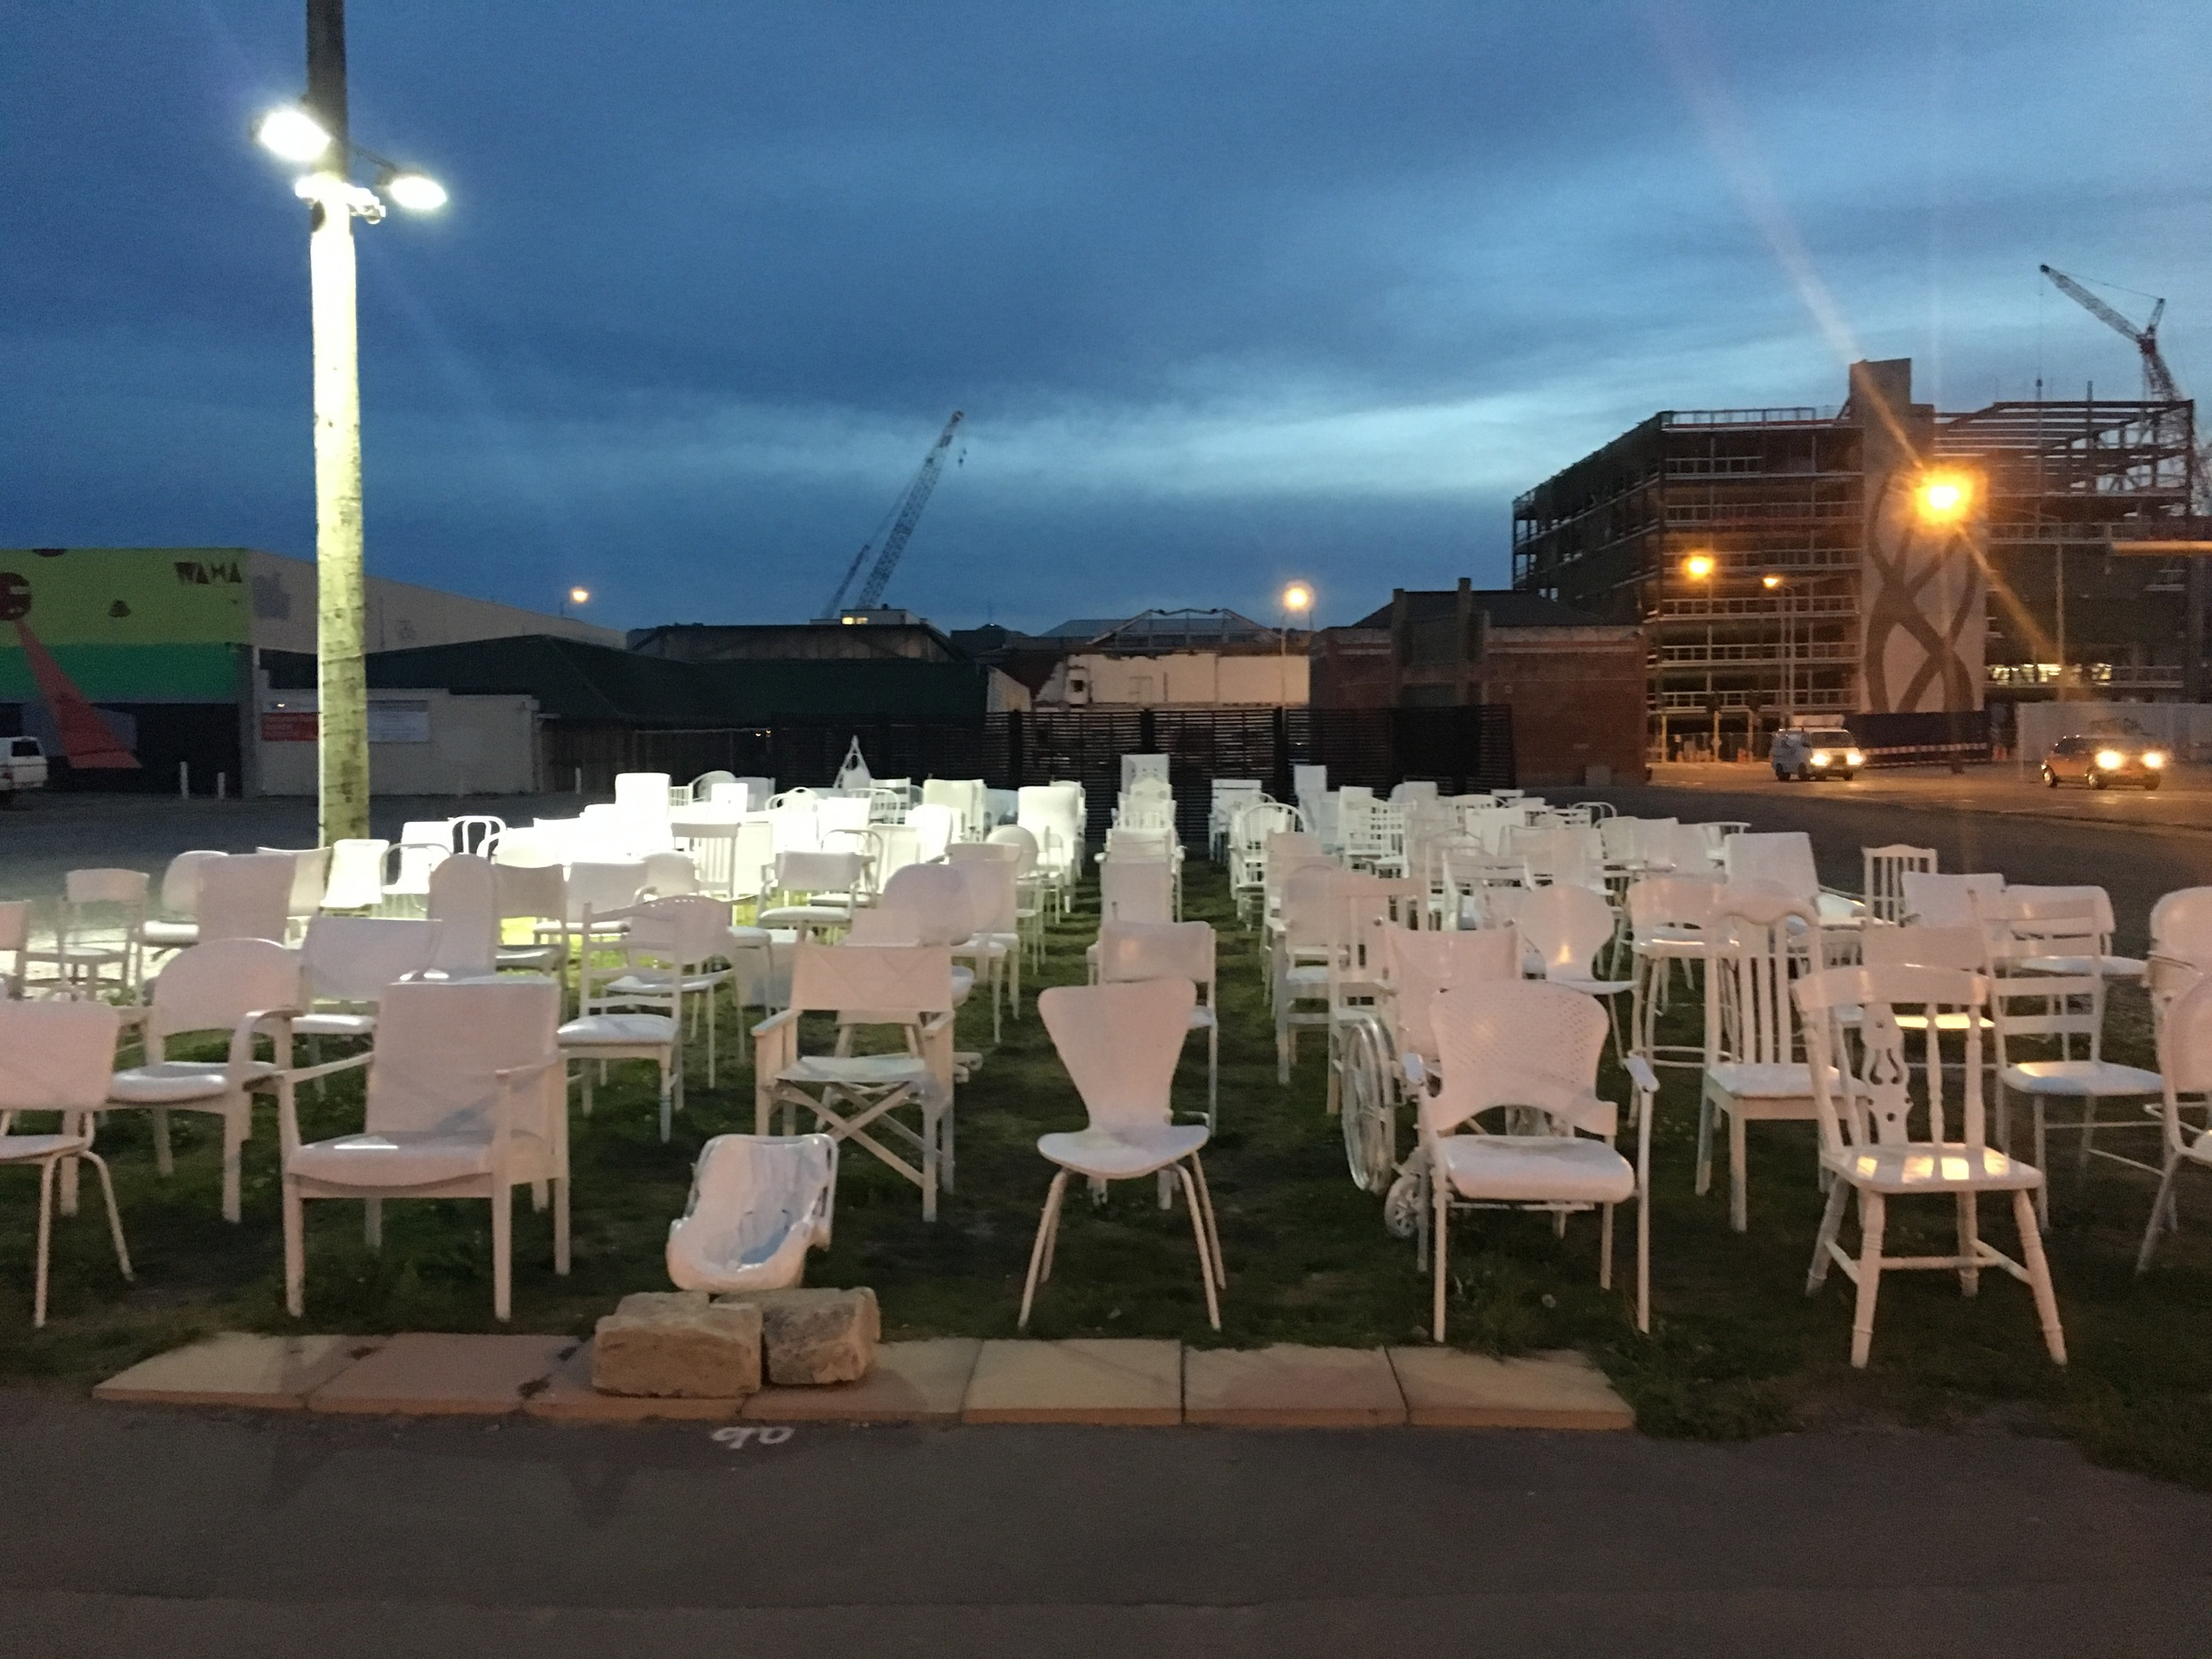 185 Chairs Earthquake Memorial